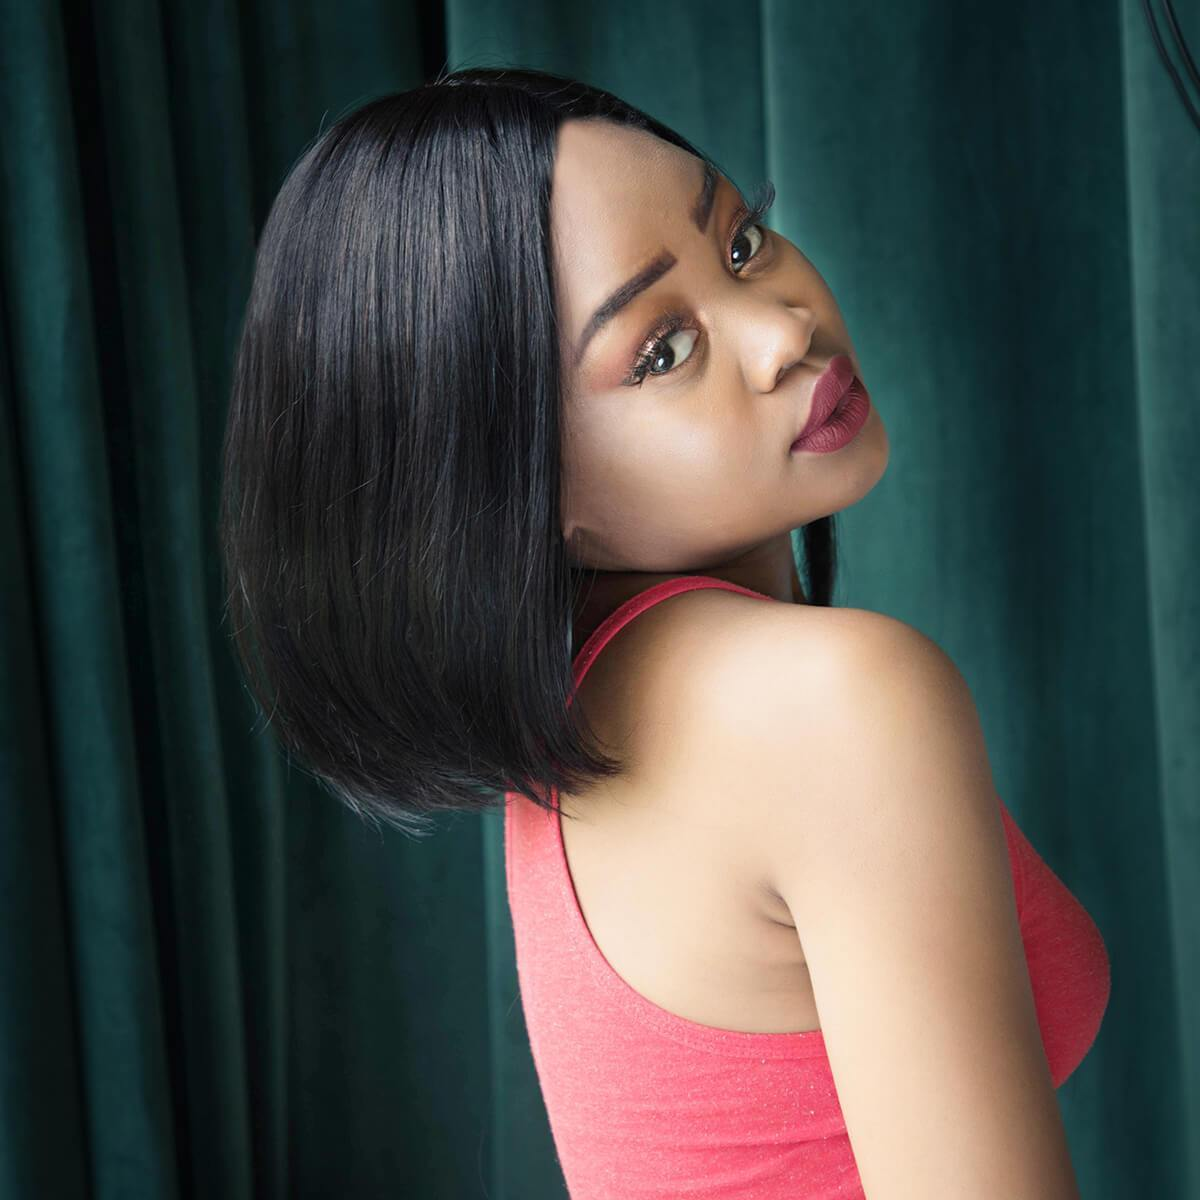 Short Bambi Bob Straight T Part Lace Wigs For Black Women - Neobeauty Hair